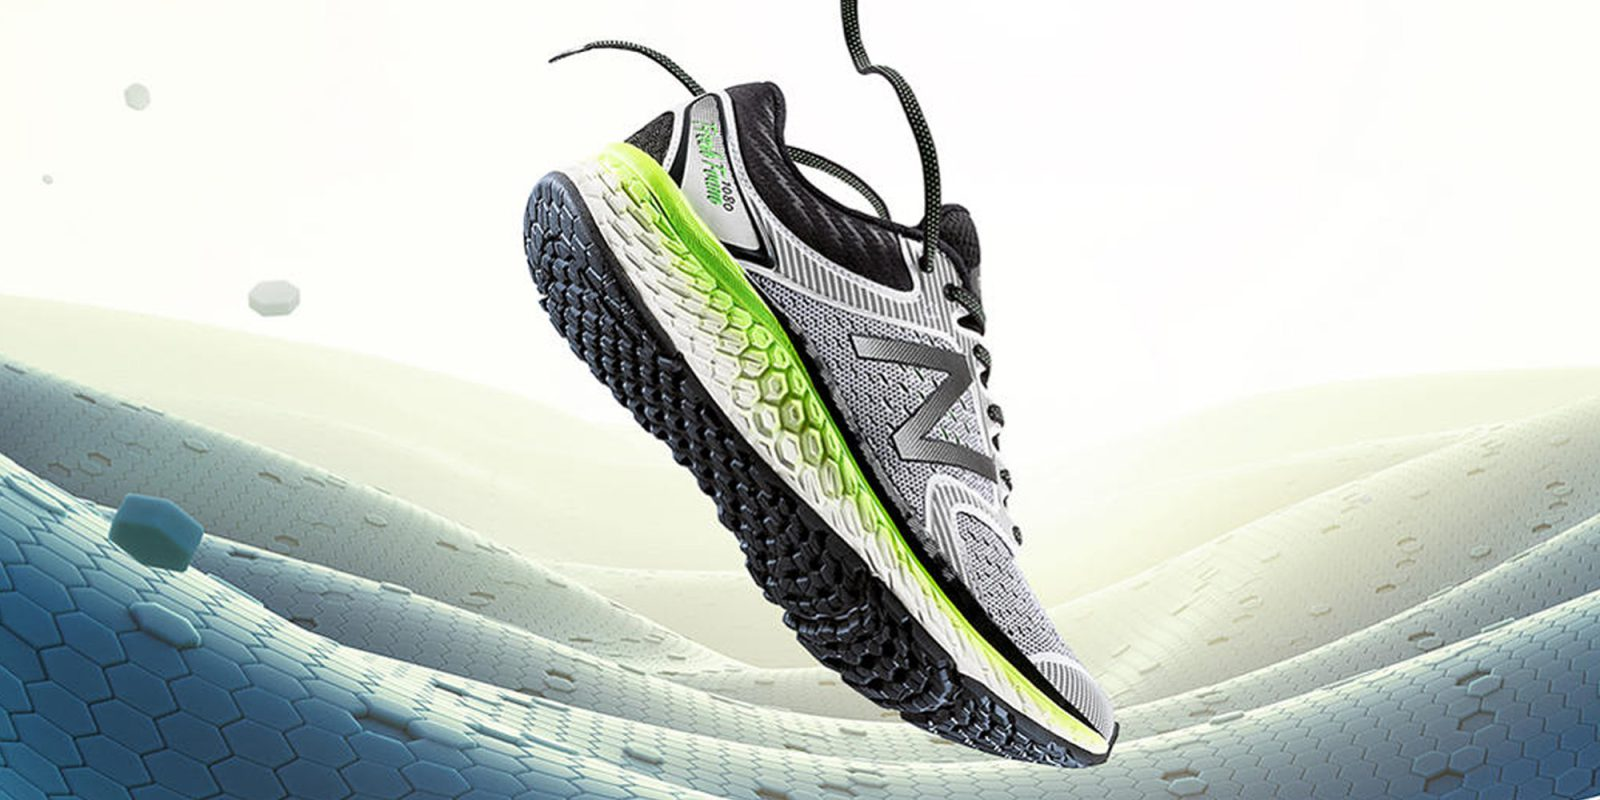 Joe's New Balance offers hundreds of styles from just $30 + free shipping - 9to5Toys